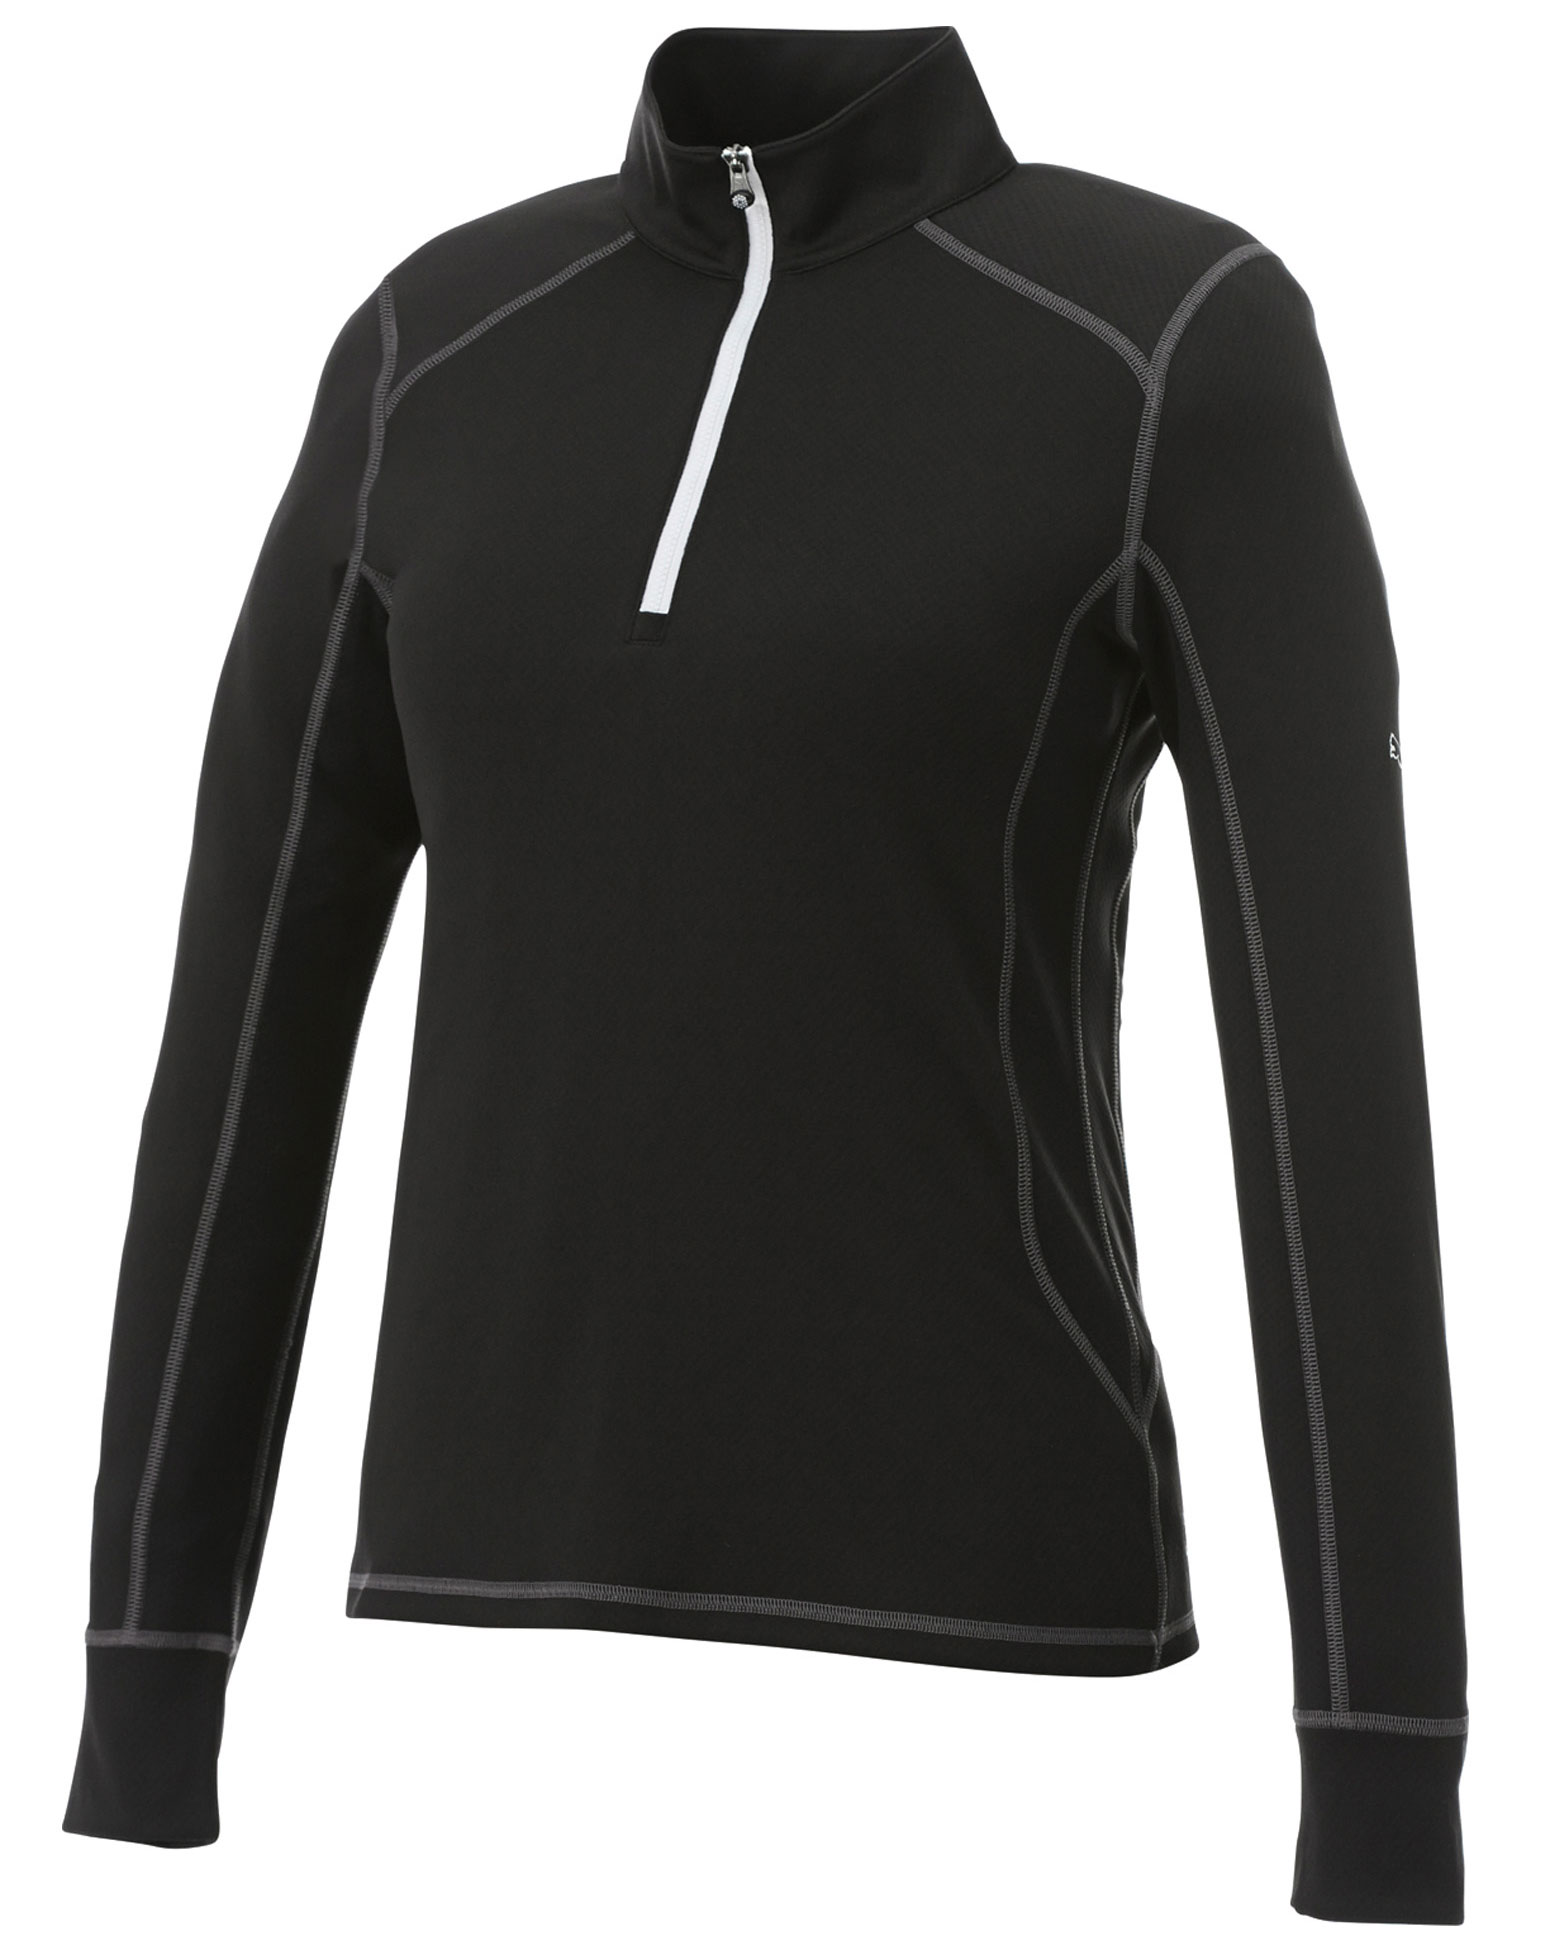 Womens Puma Golf Tech 1/2-Zip Top